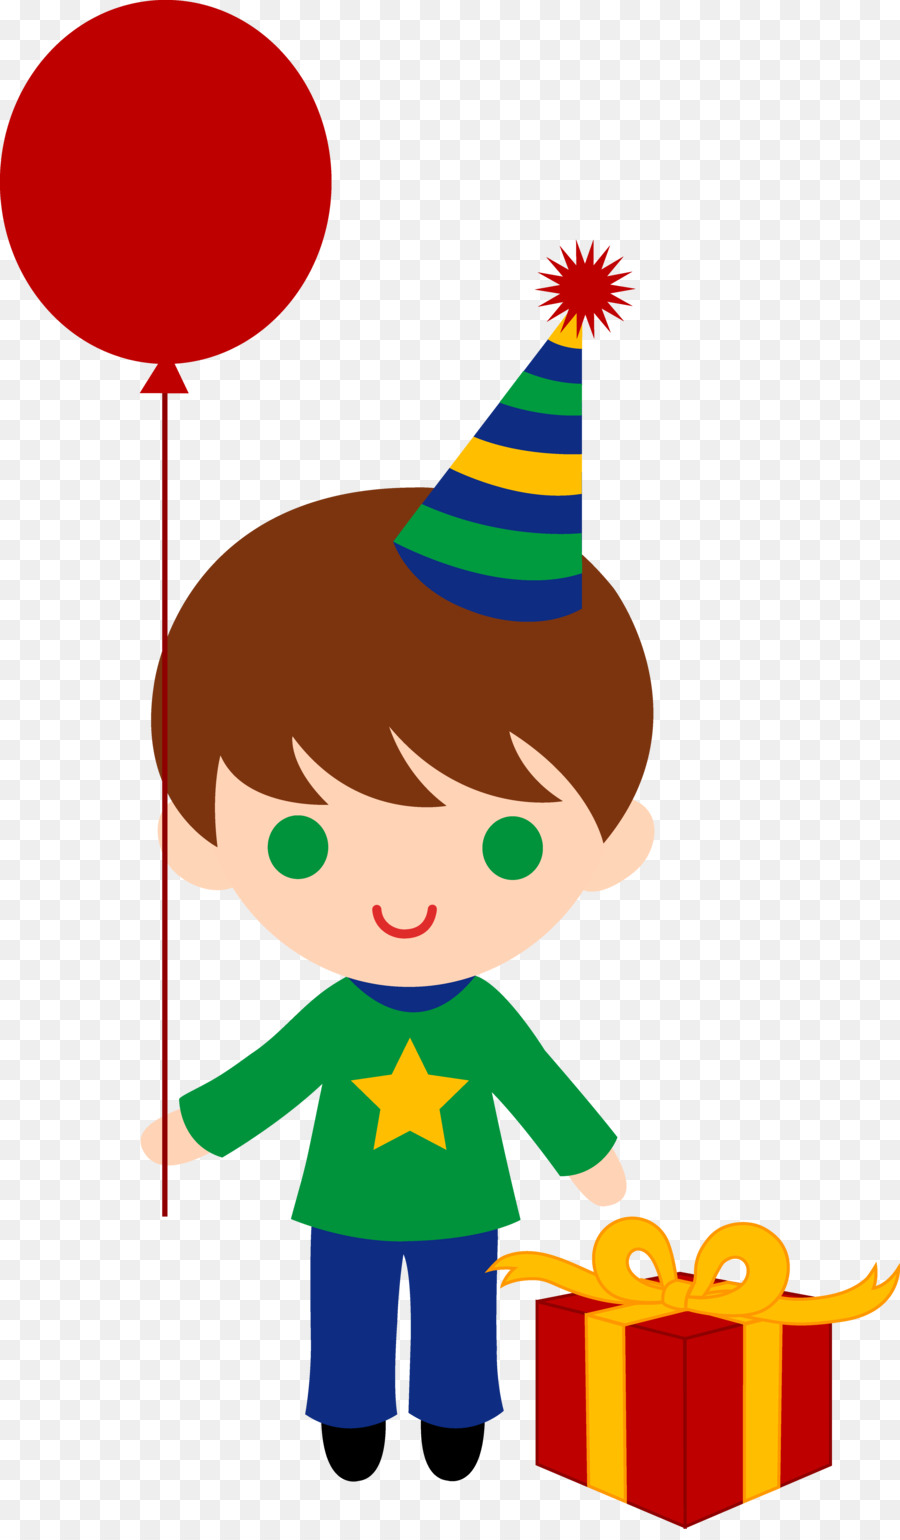 birthday cake cartoon boy clip art animated boy cliparts png rh kisspng com birthday boy clip art free birthday boy clipart images